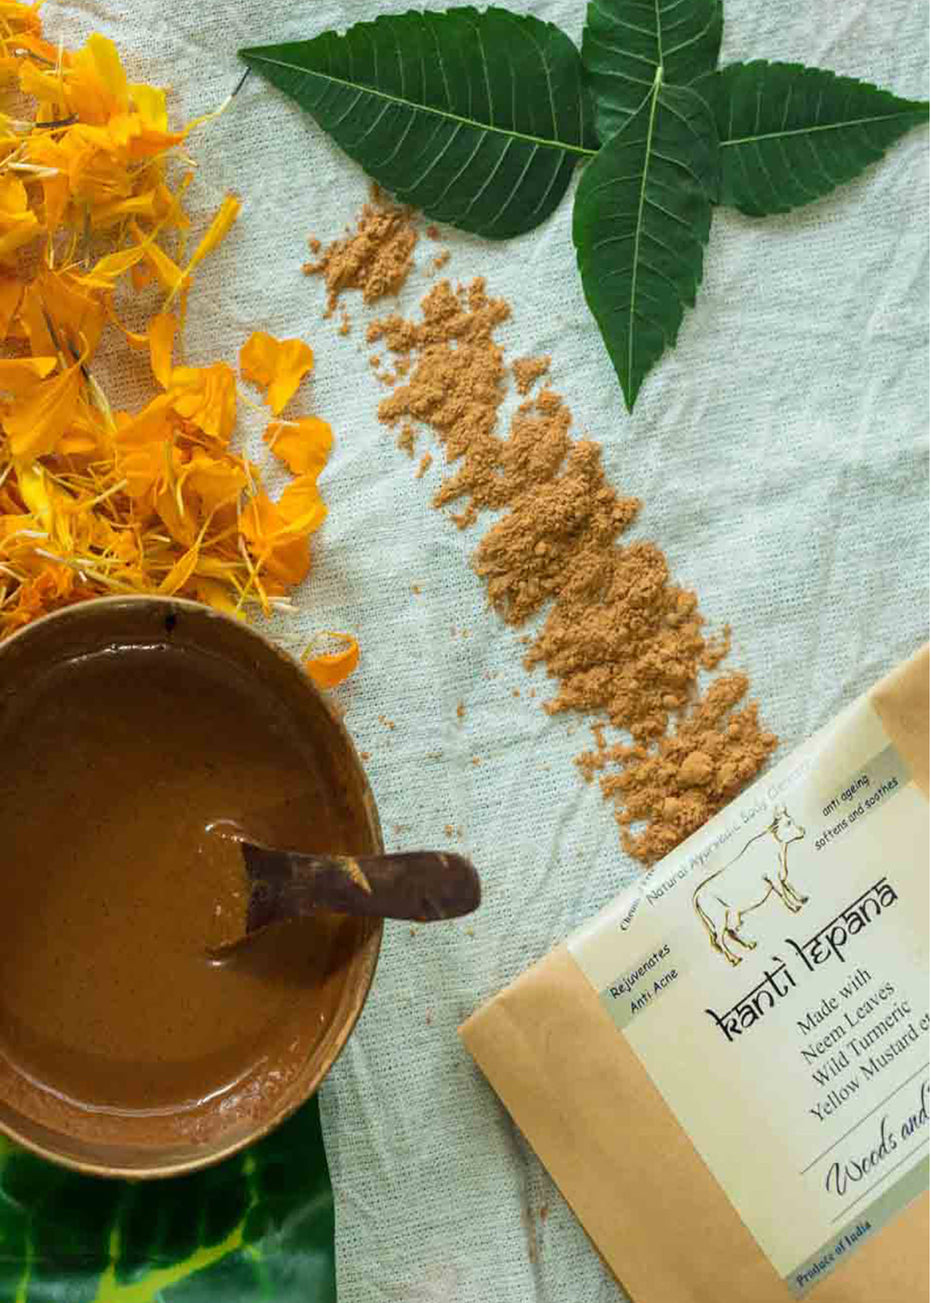 Woods And Petals Handmade Panchgavya Ubtan Or Body Scrub (Kanti Lepana), body scrub, Woods And Petals, ihaat, [made_in_india], [handmade] - ihaat